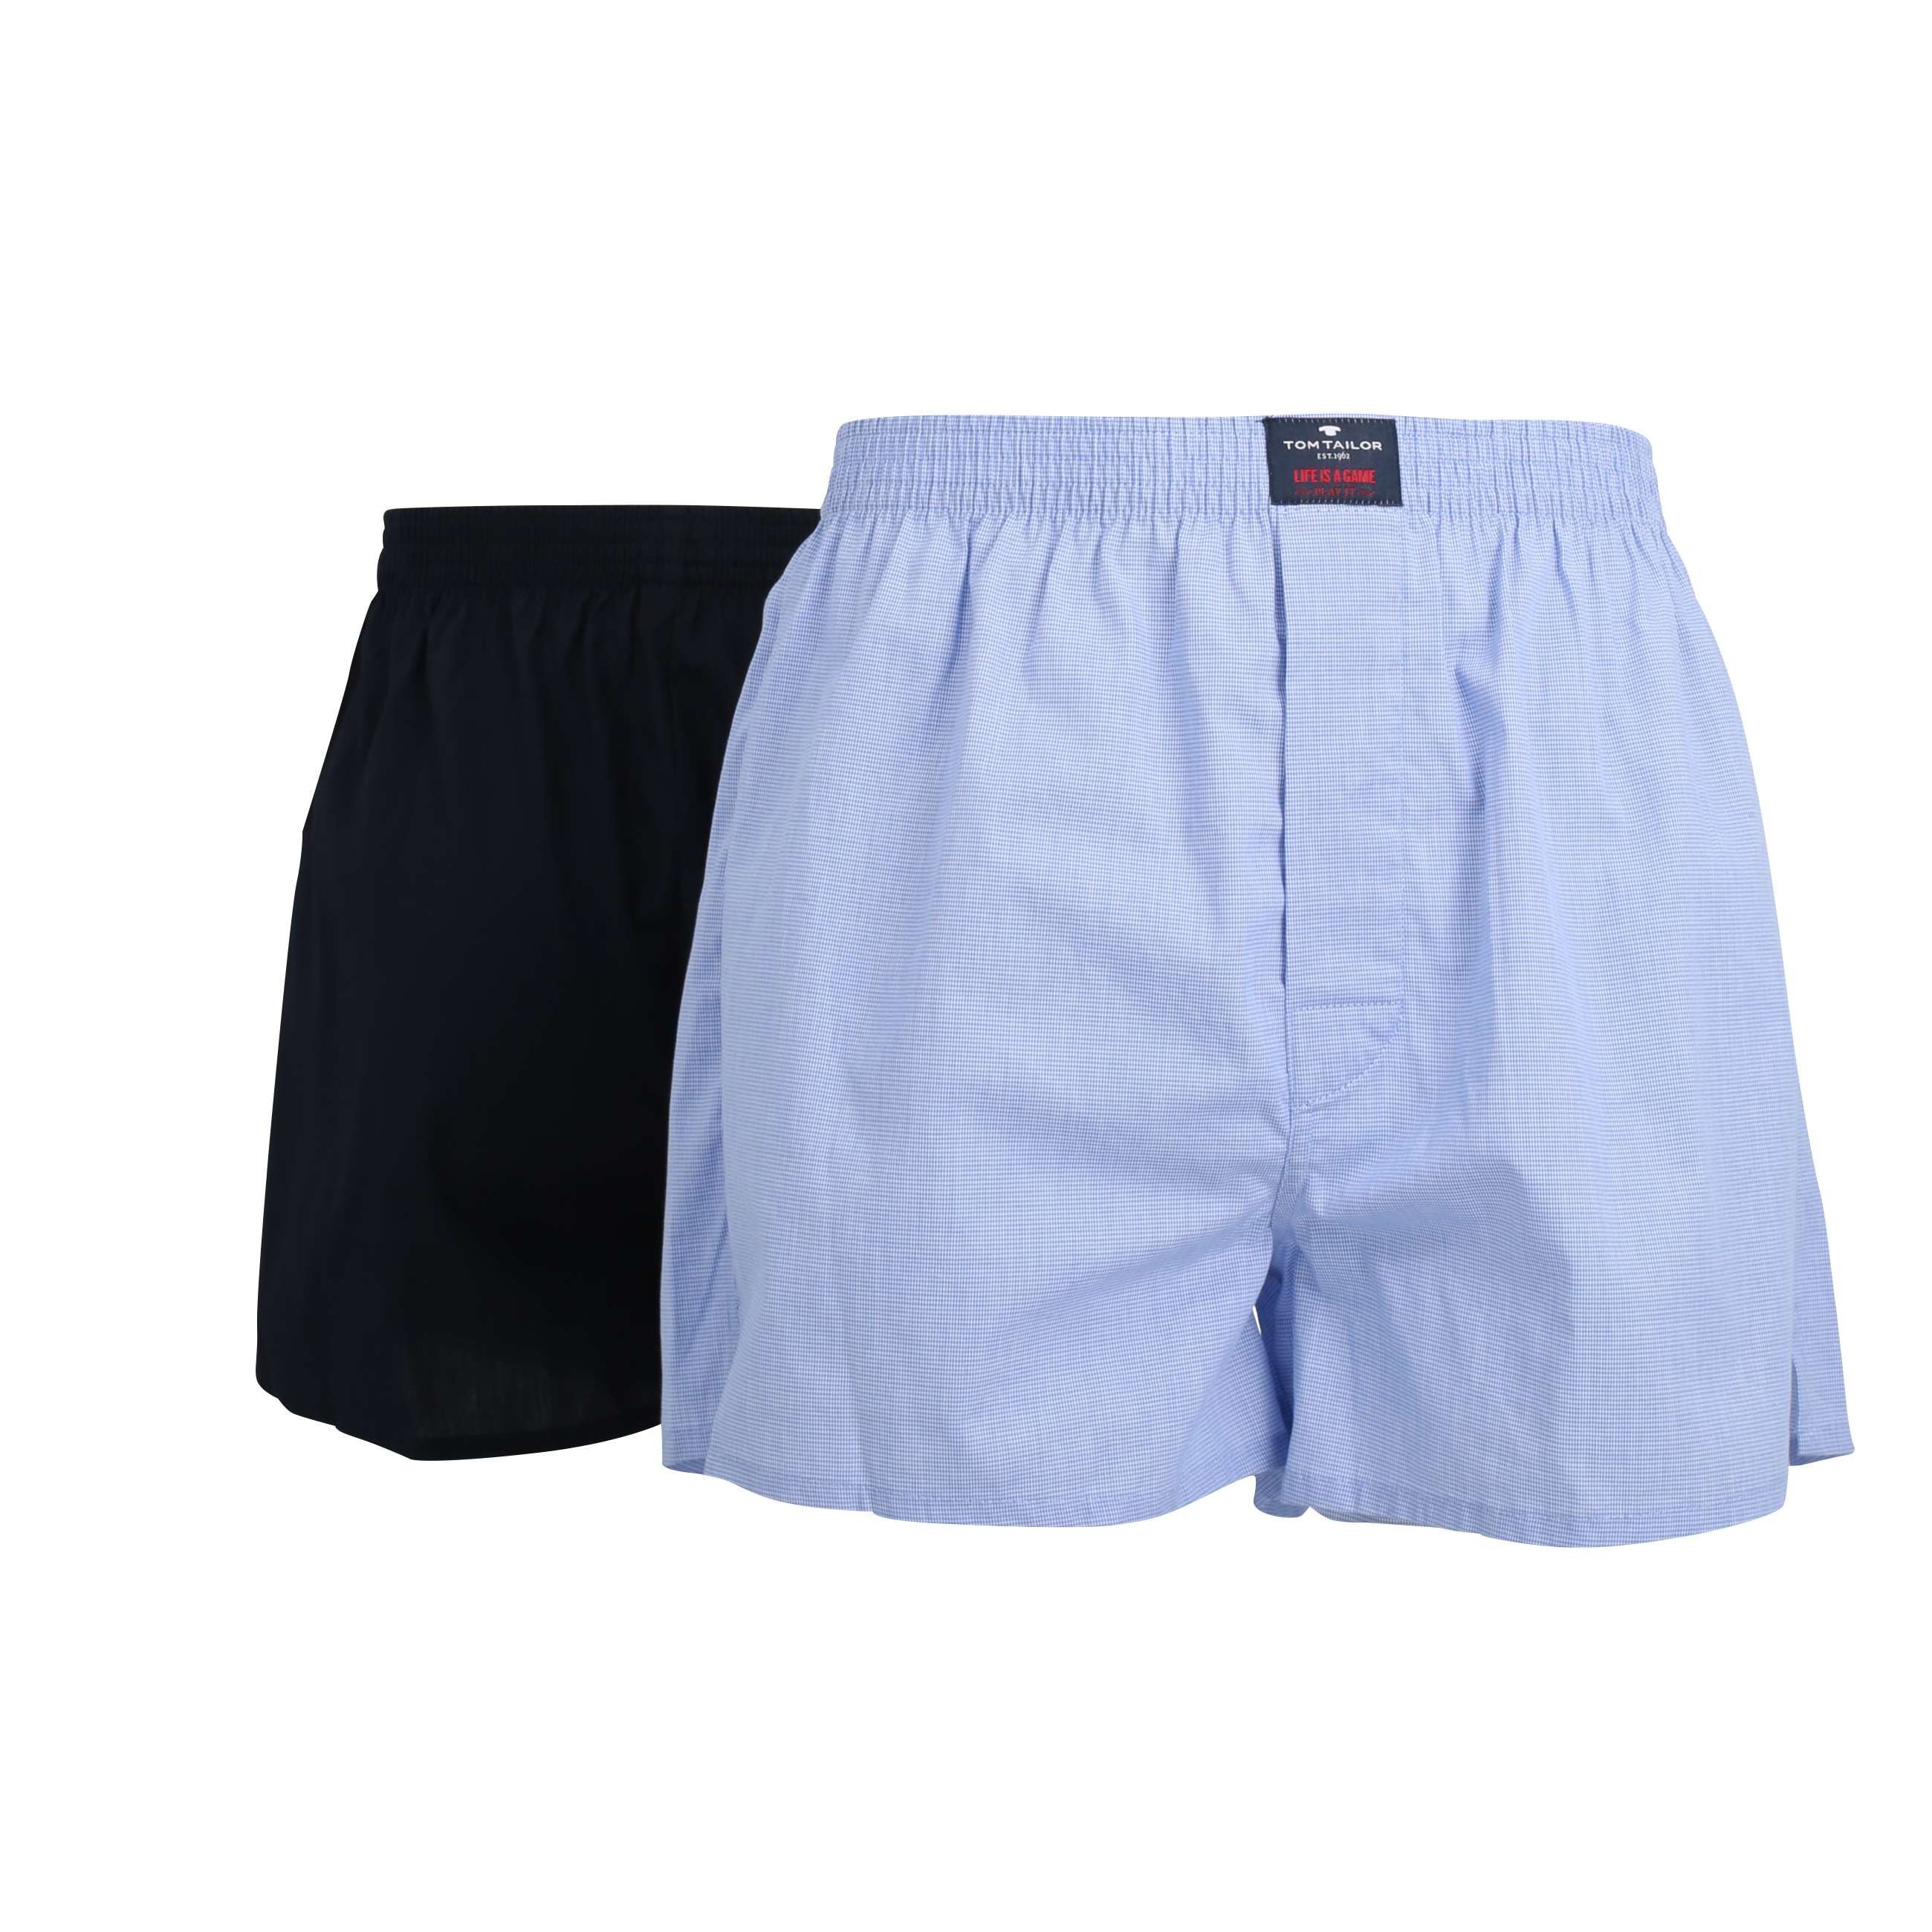 tom tailor herren boxer short blau kariert 2er pack set. Black Bedroom Furniture Sets. Home Design Ideas